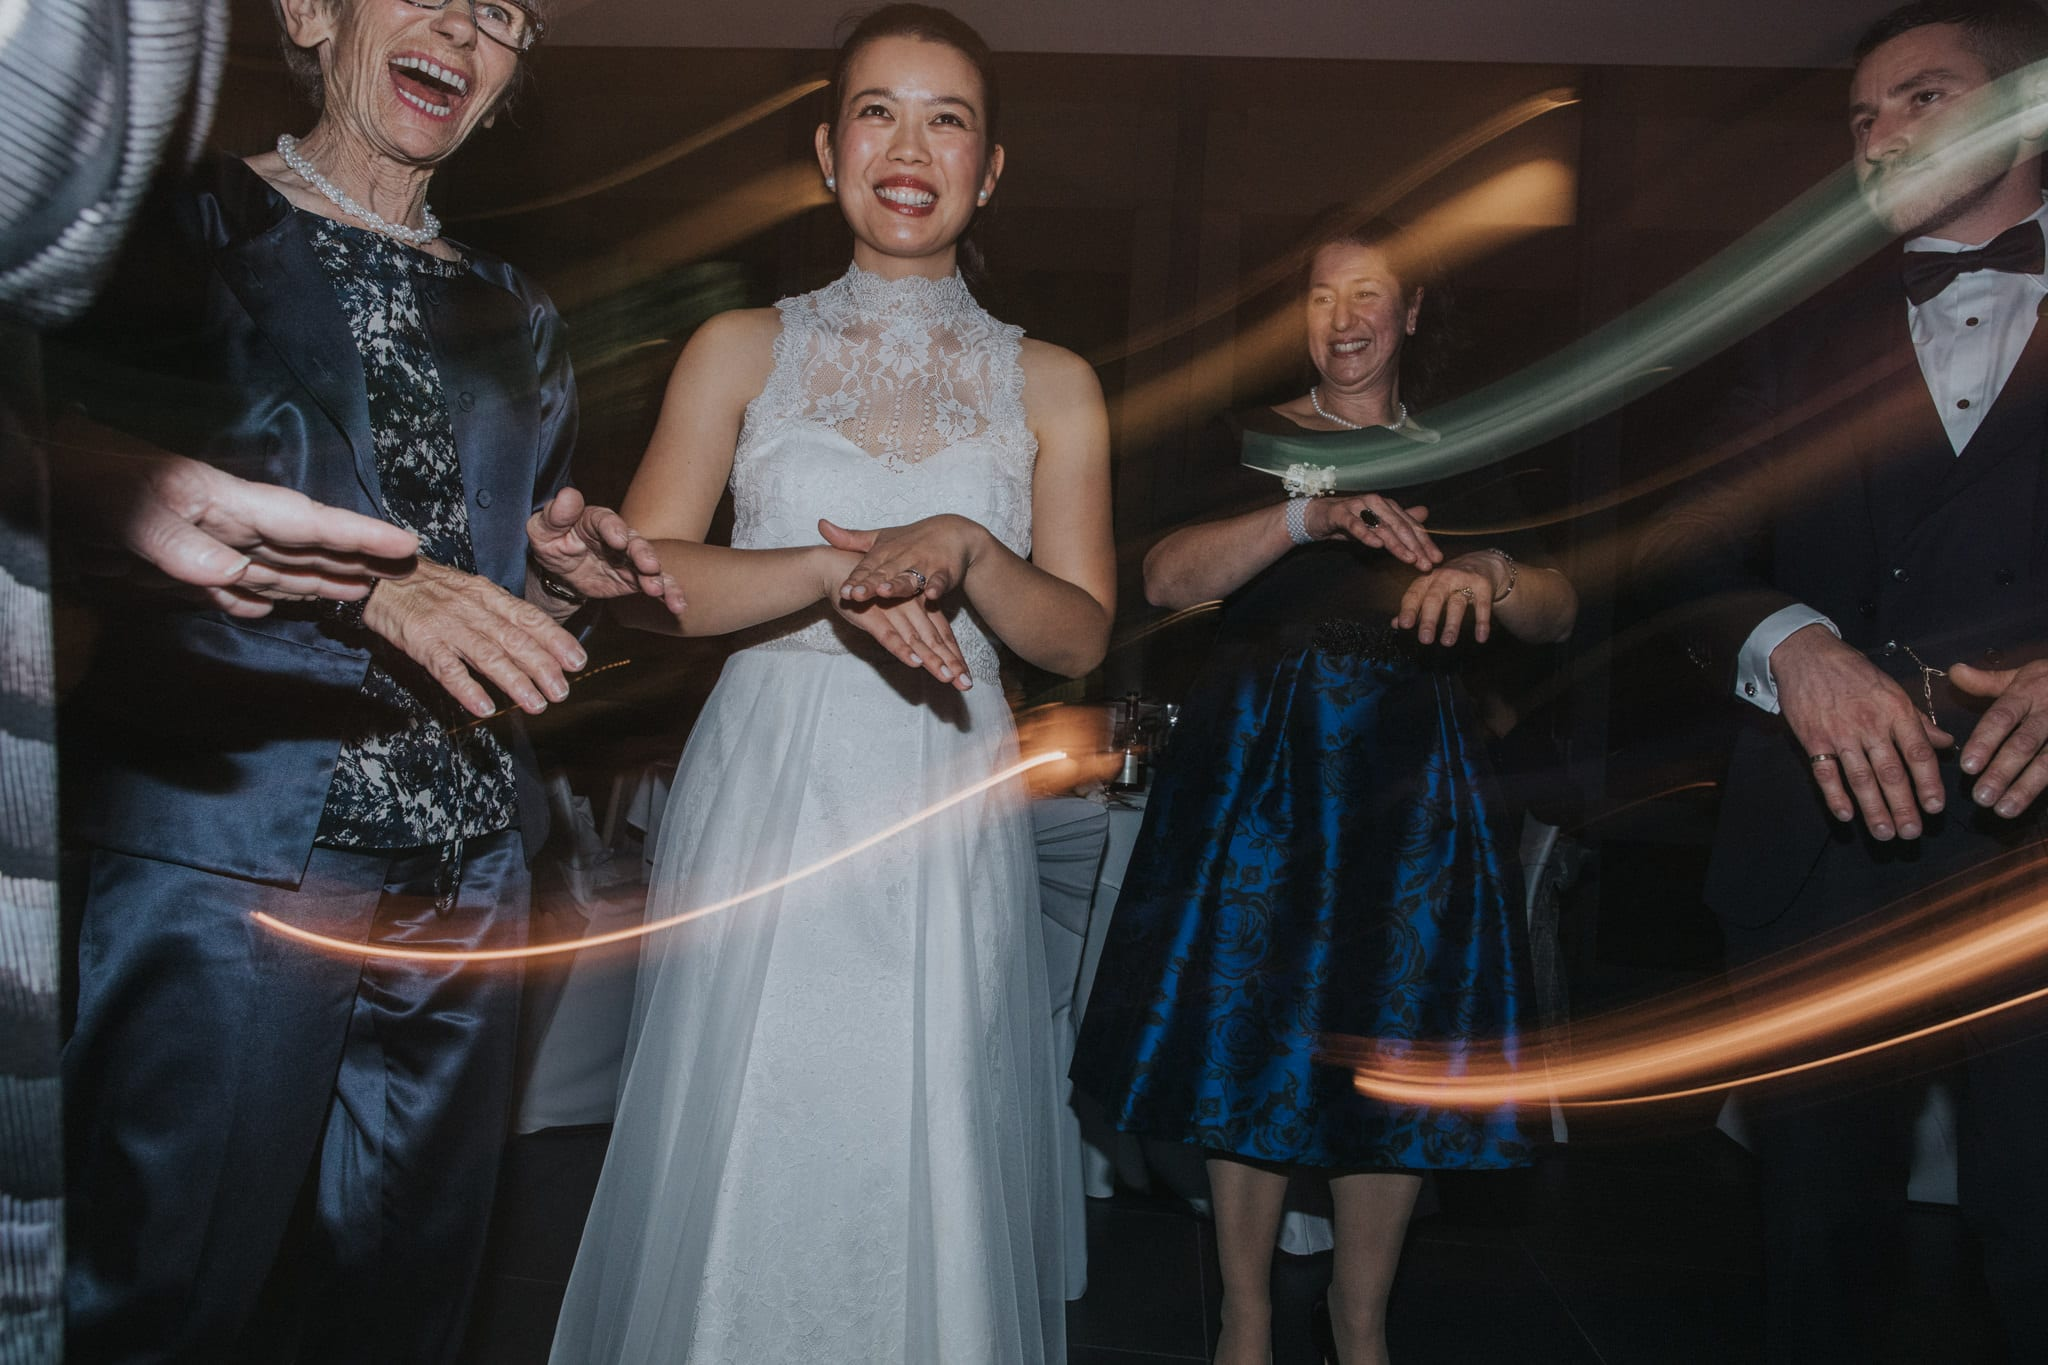 creative wedding party photos